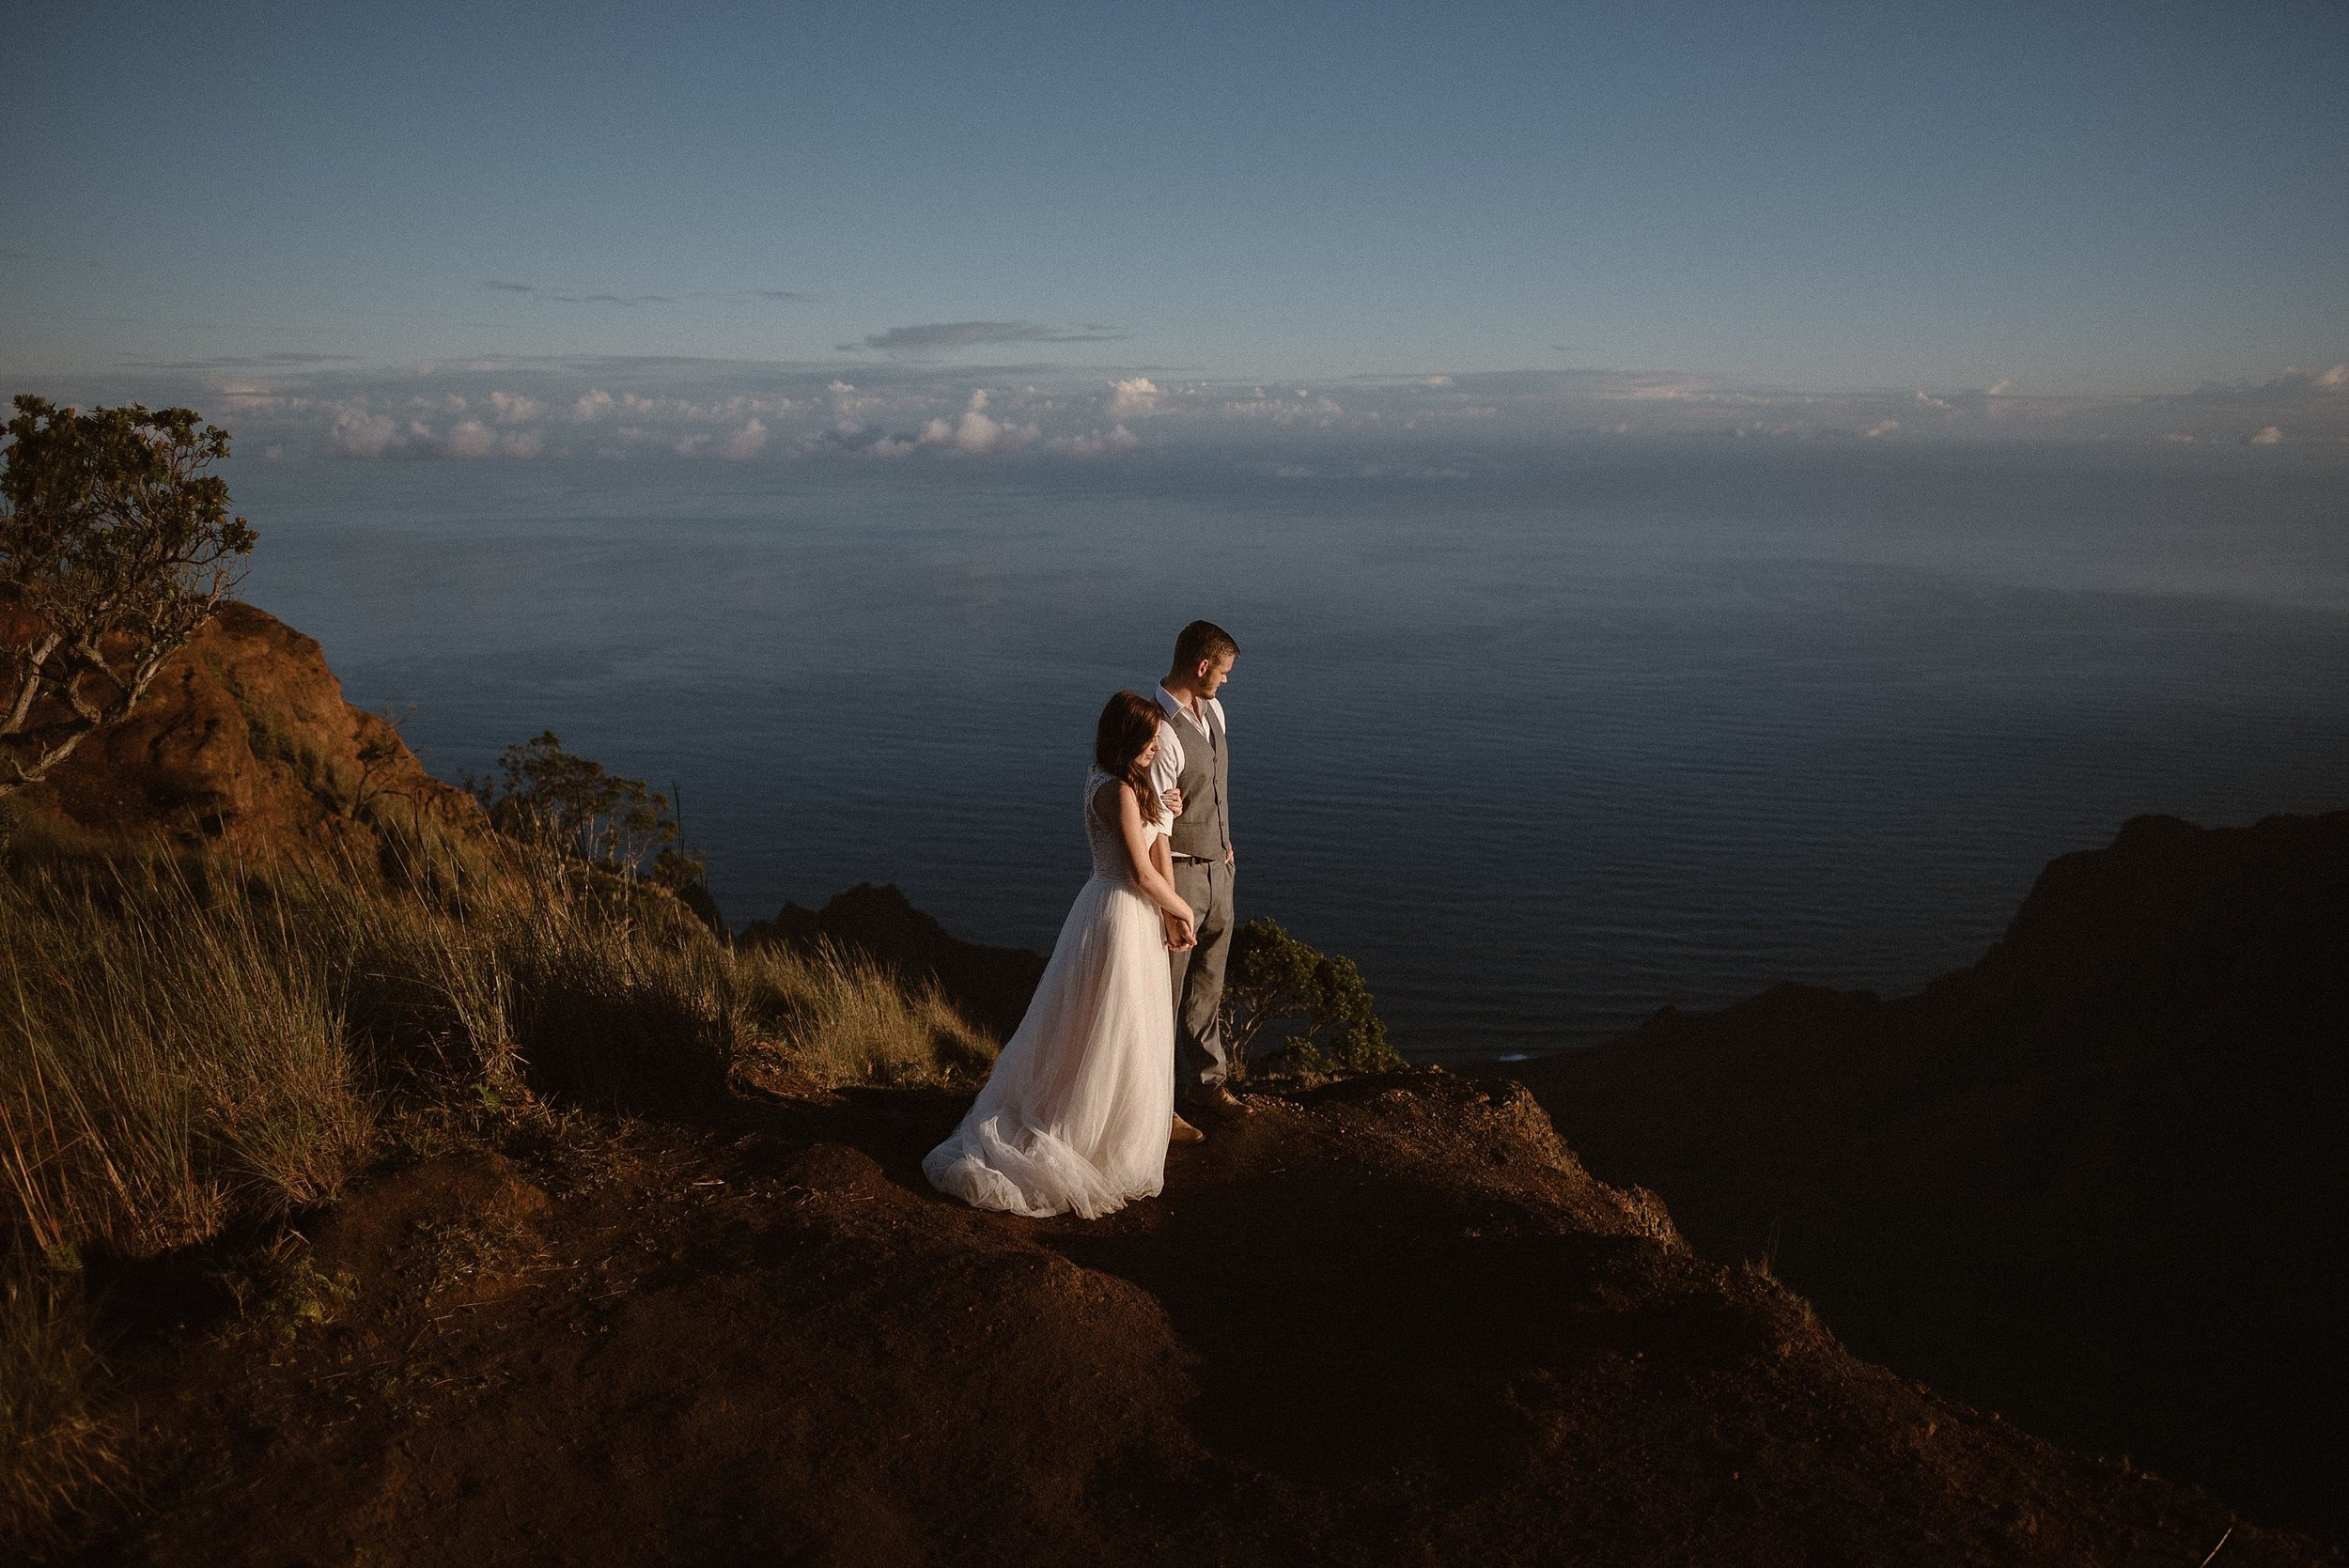 They paused for one last look over the calm ocean, the afternoon sunlight on their faces. Kourtney and Chris threw tradition to the wind and hiked up to Kalalaua Lookout in Kauai with only their intimate elopement photographer Maddie Mae to snap their most private moments of their ceremony.